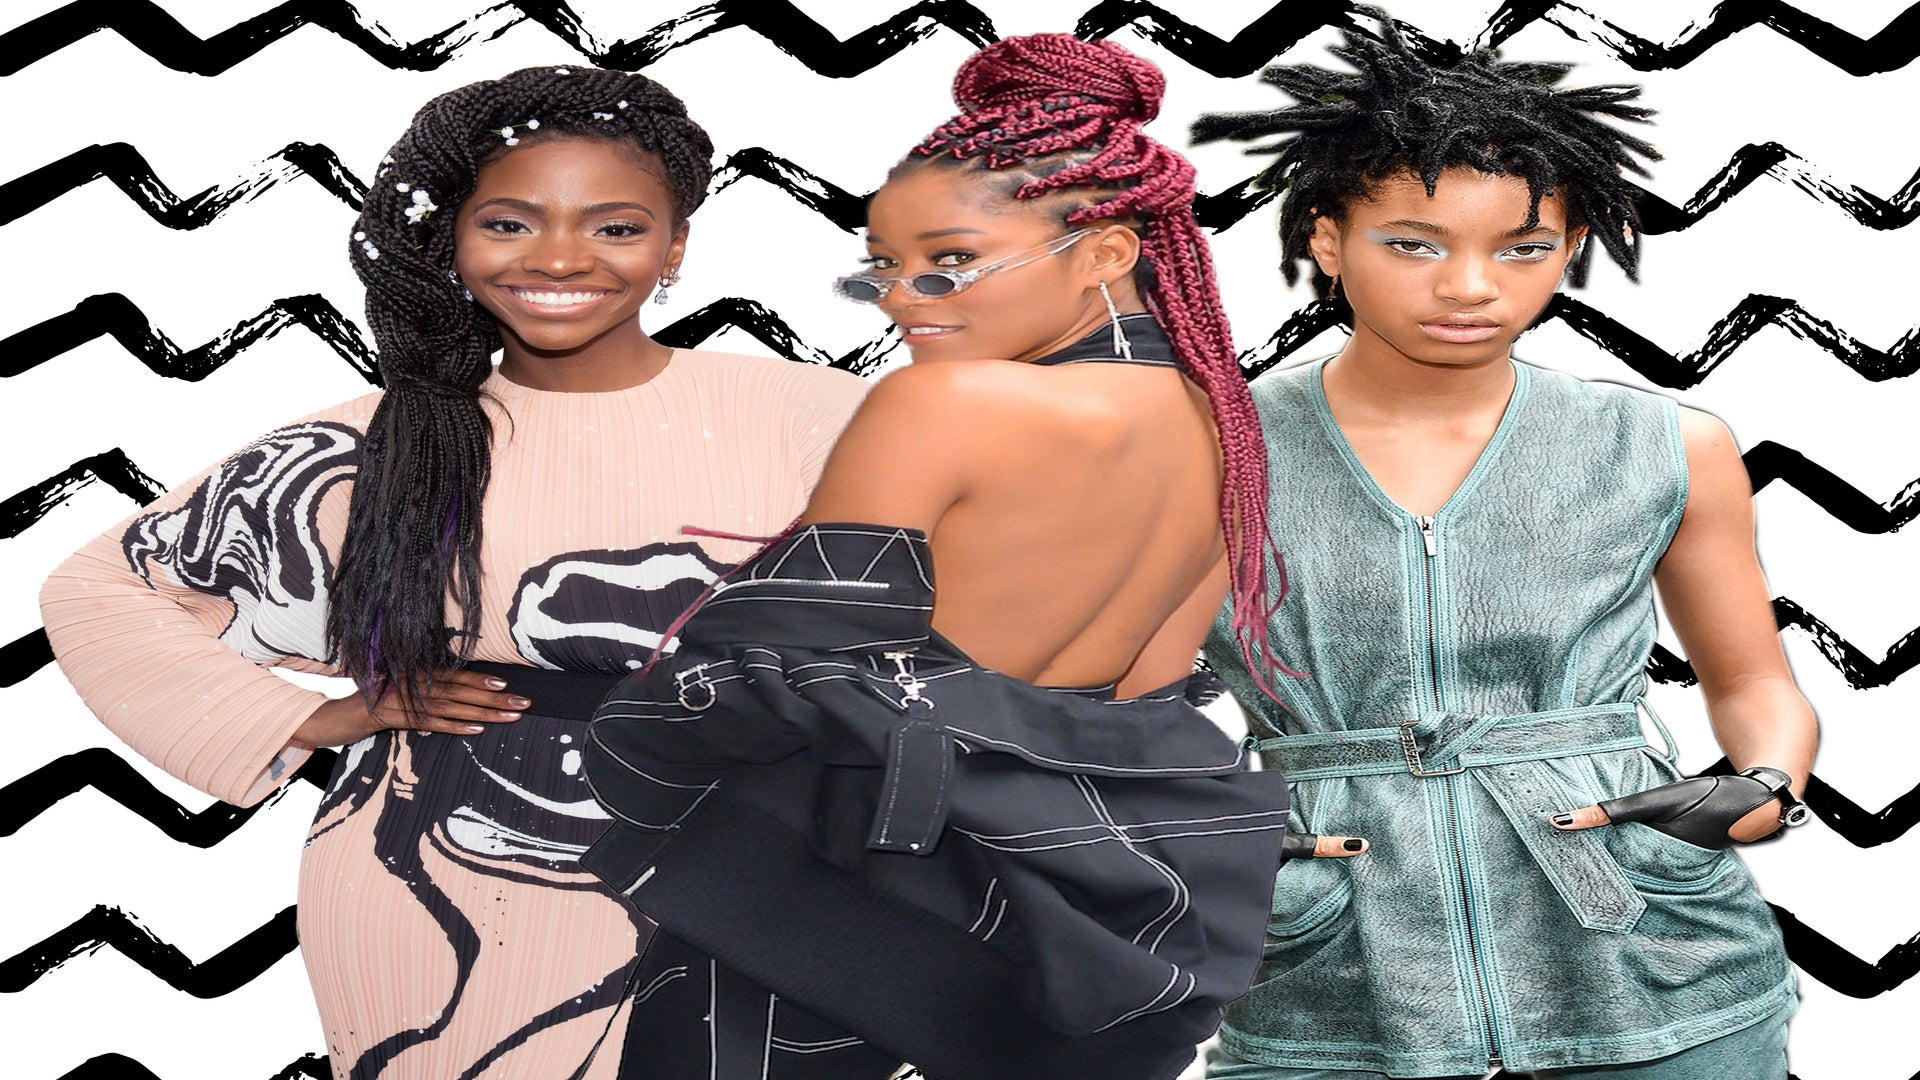 21 A-List Protective Hairstyles We Were Obsessed With In 2016